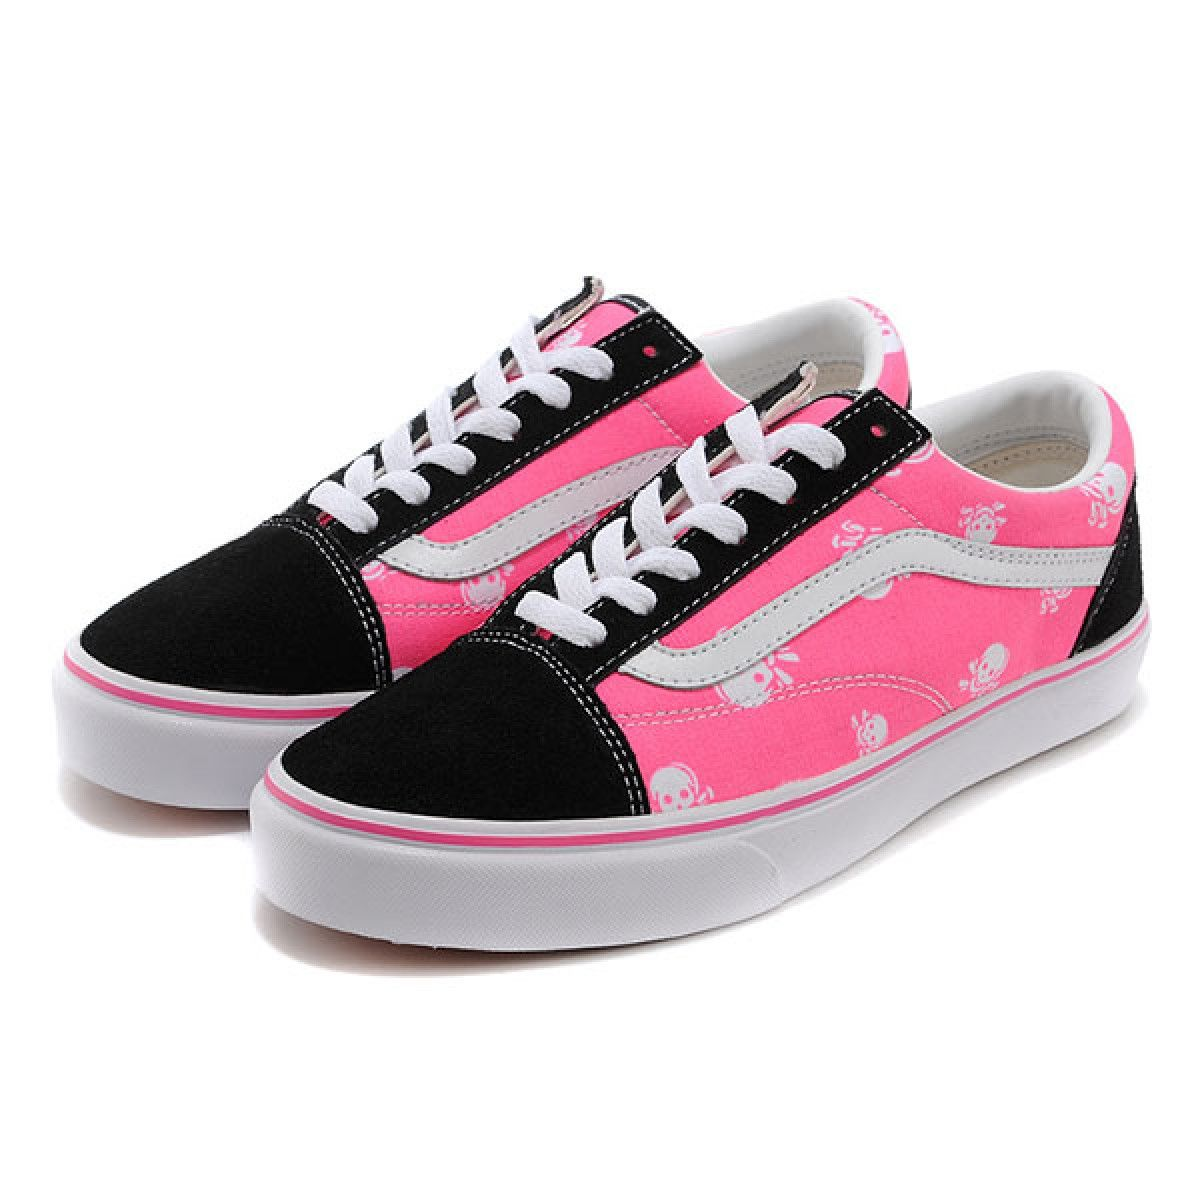 5a23c7953c83fd Vans Shoes Black Pink Skulls Old Skool Shoes Womens Classic Canvas ...